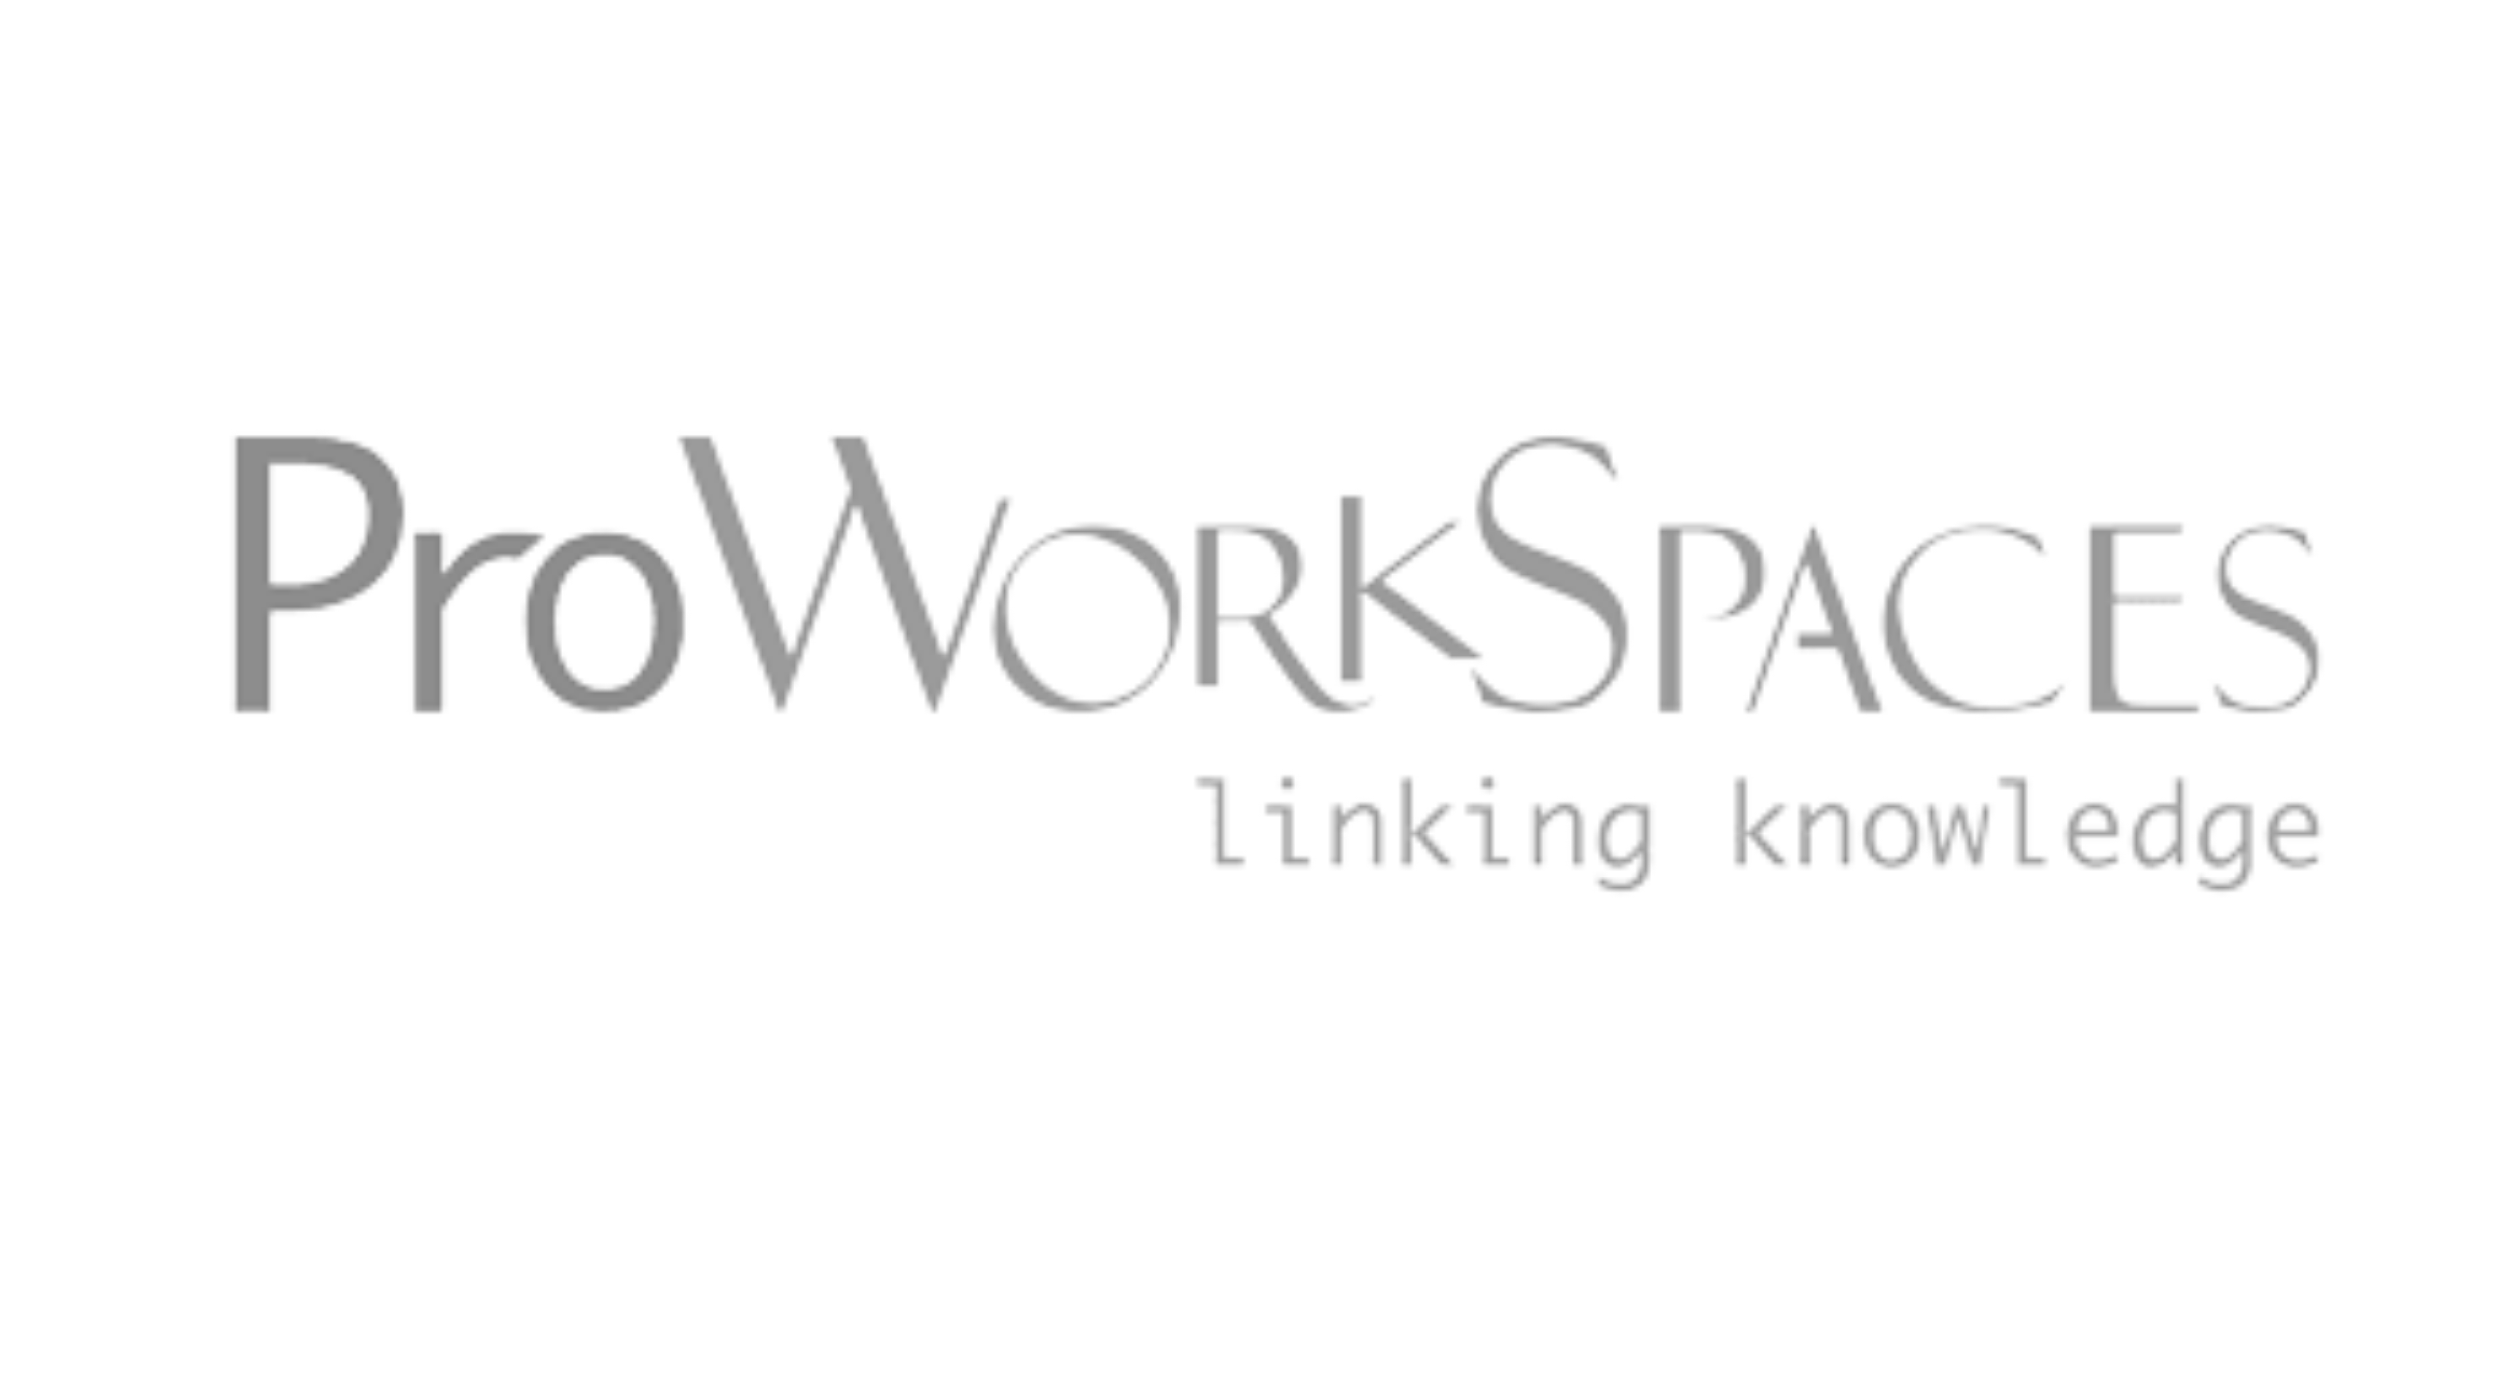 Proworkerspace